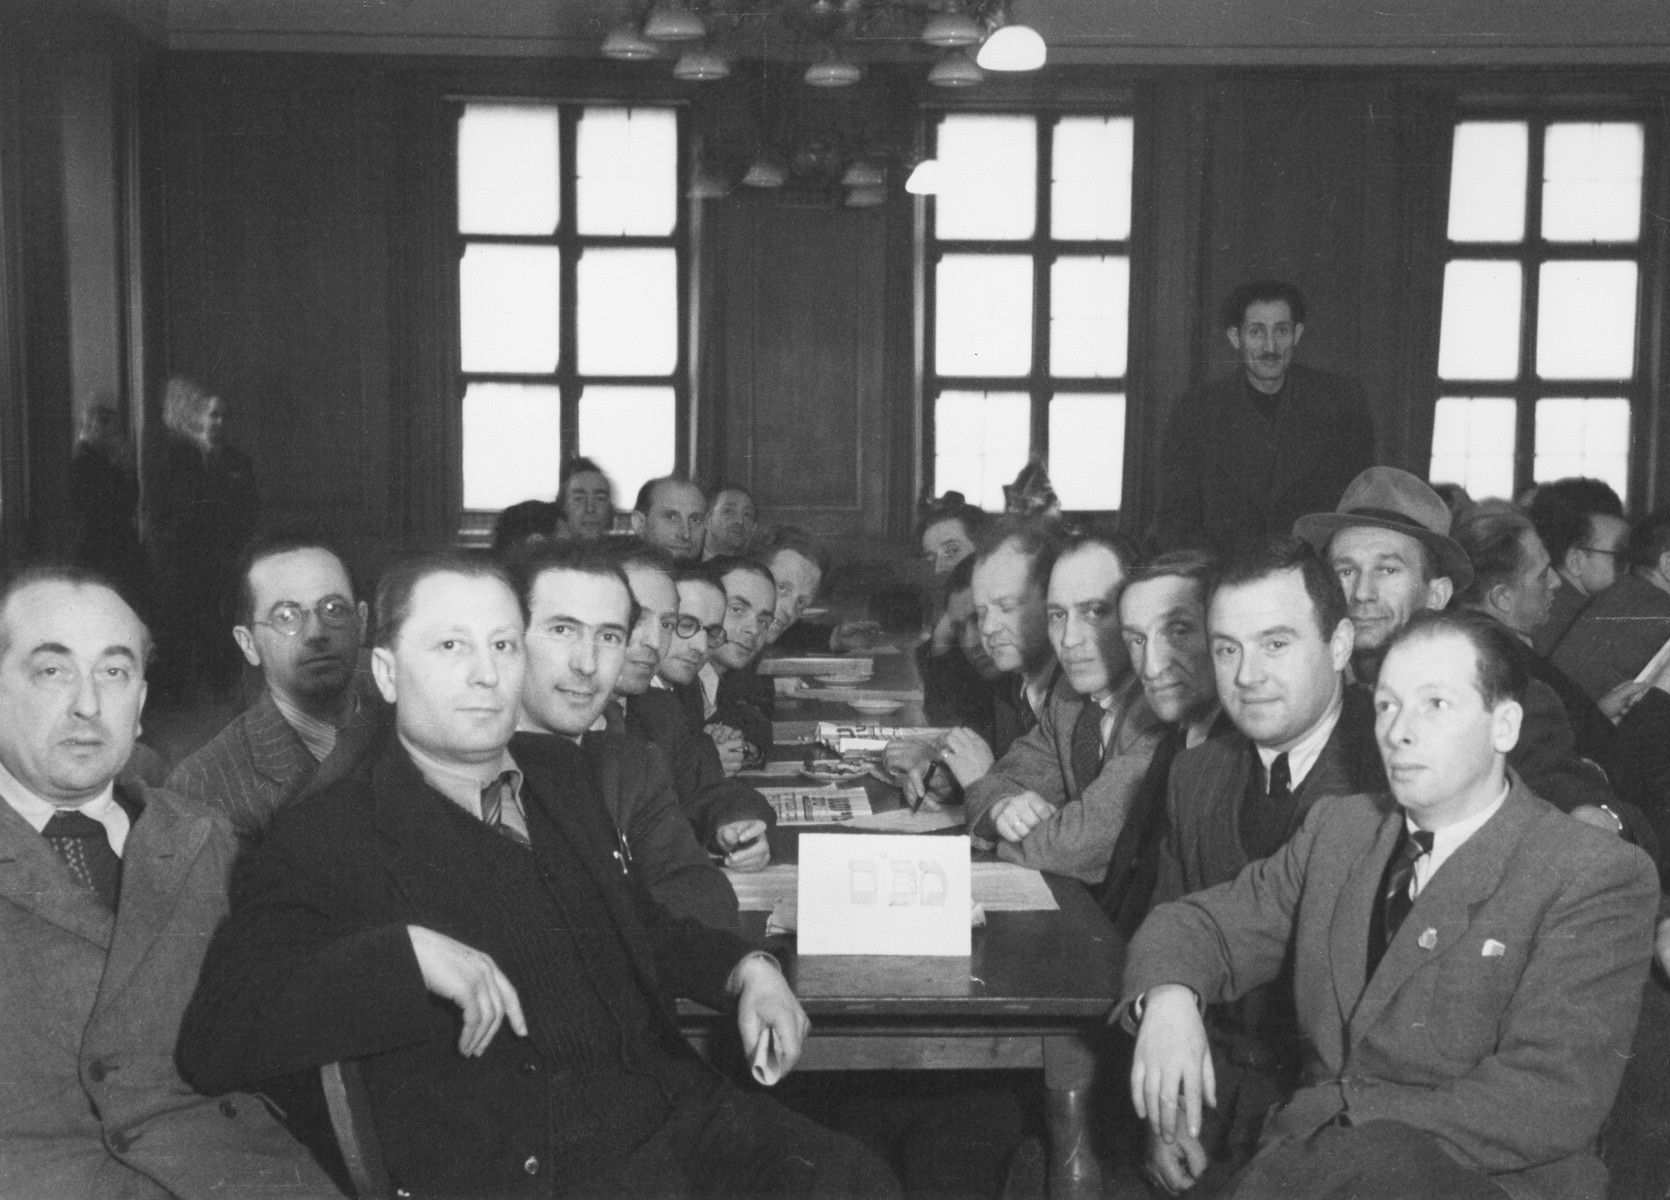 A meeting of the Central Committee of the Liberated Jews in the US Zone of Germany.